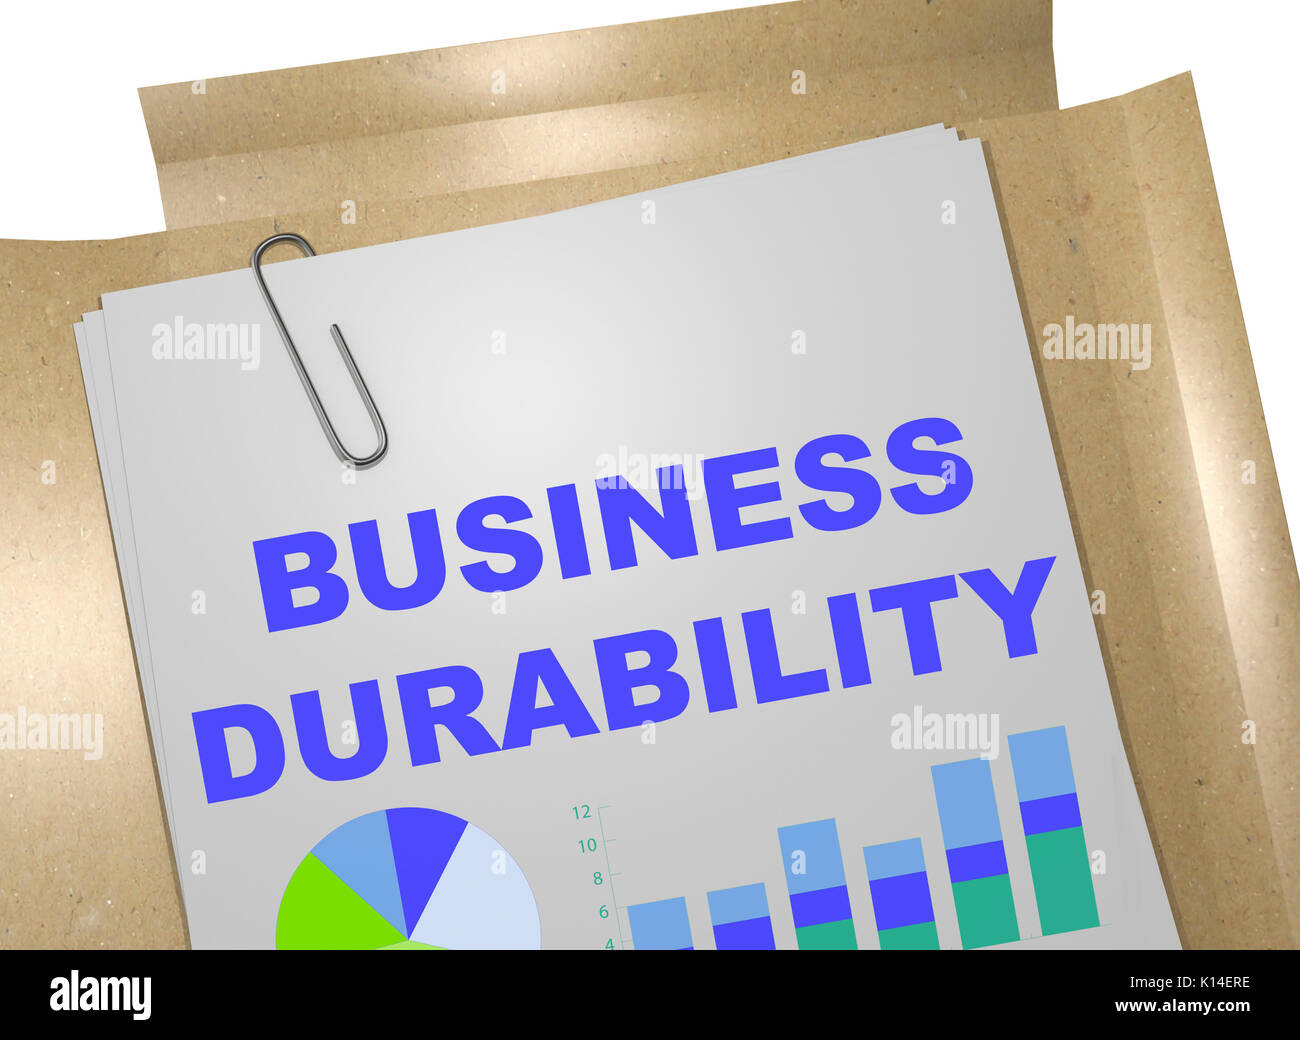 3D illustration of 'BUSINESS DURABILITY' title on business document - Stock Image